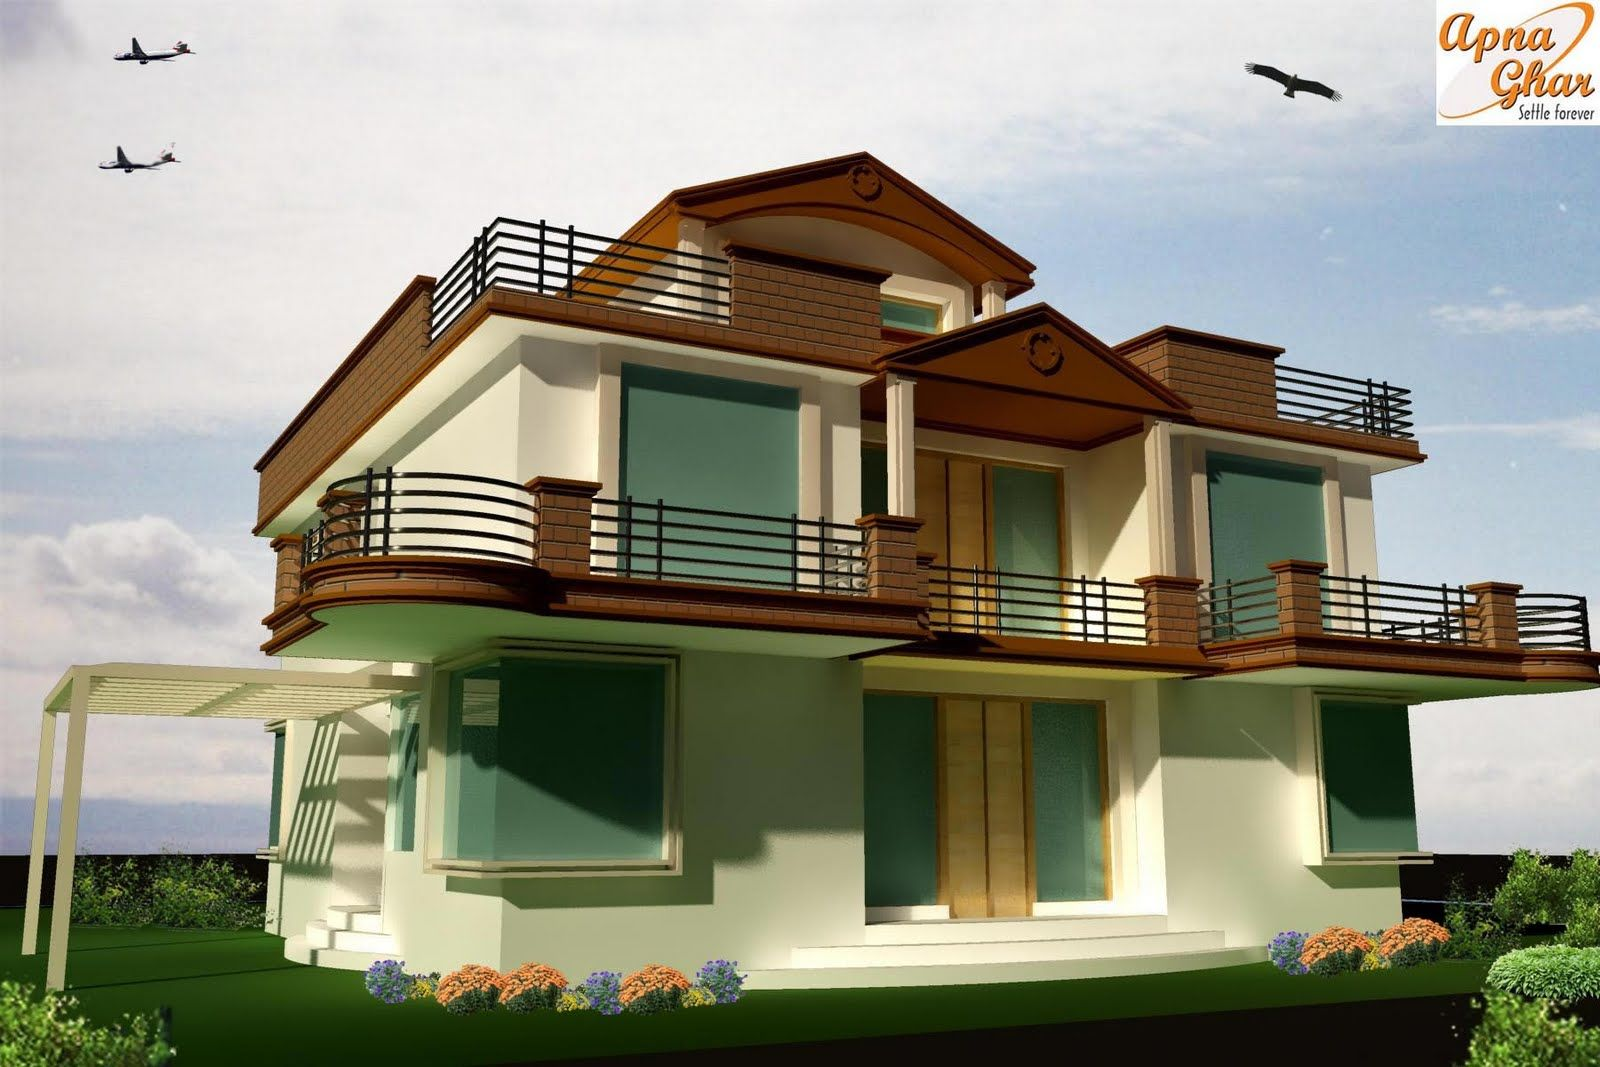 Architectural designs modern architectural house plans for Troncoso building modern design